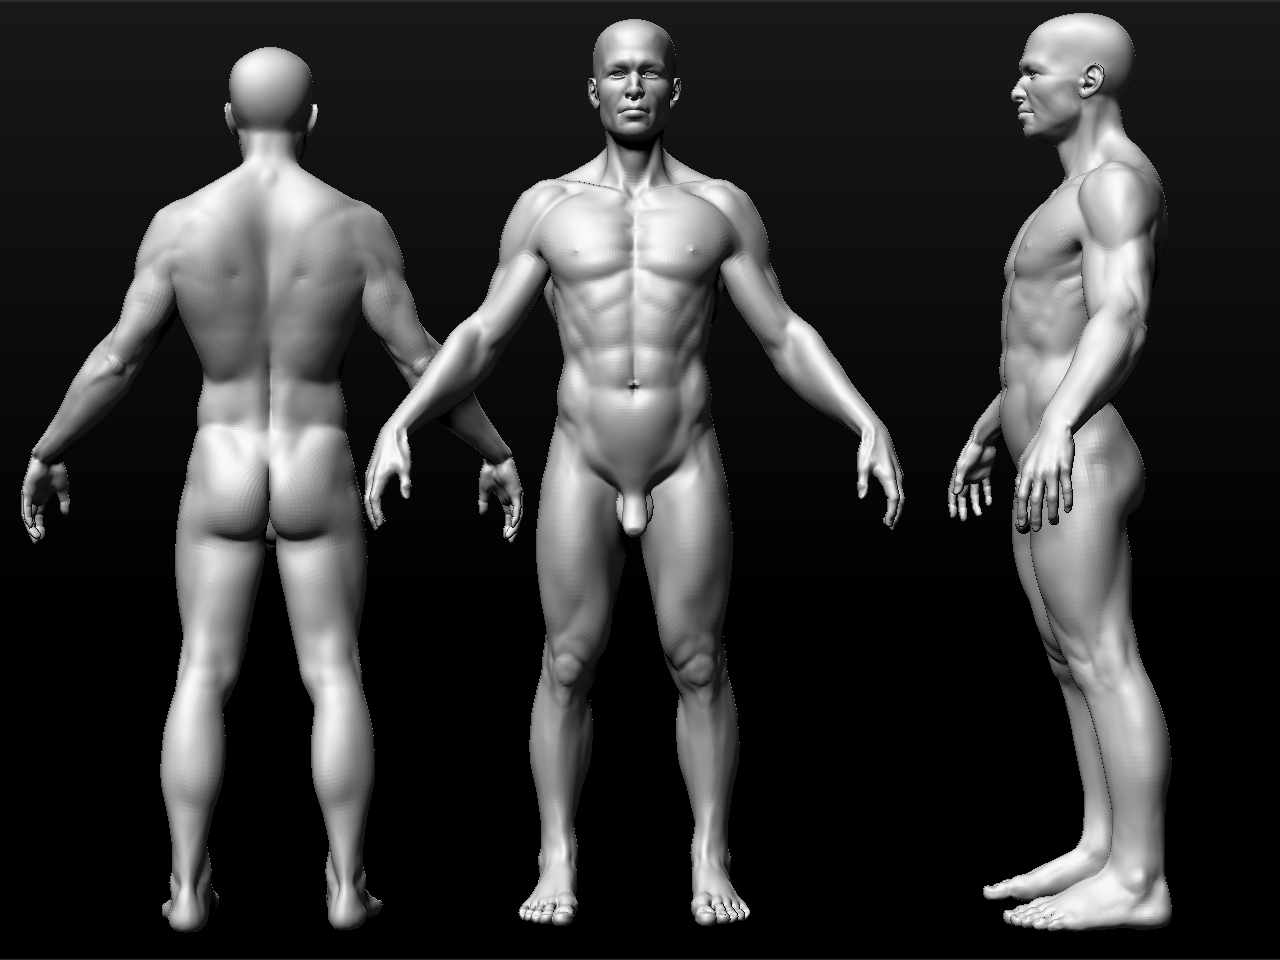 Another Anatomy Model